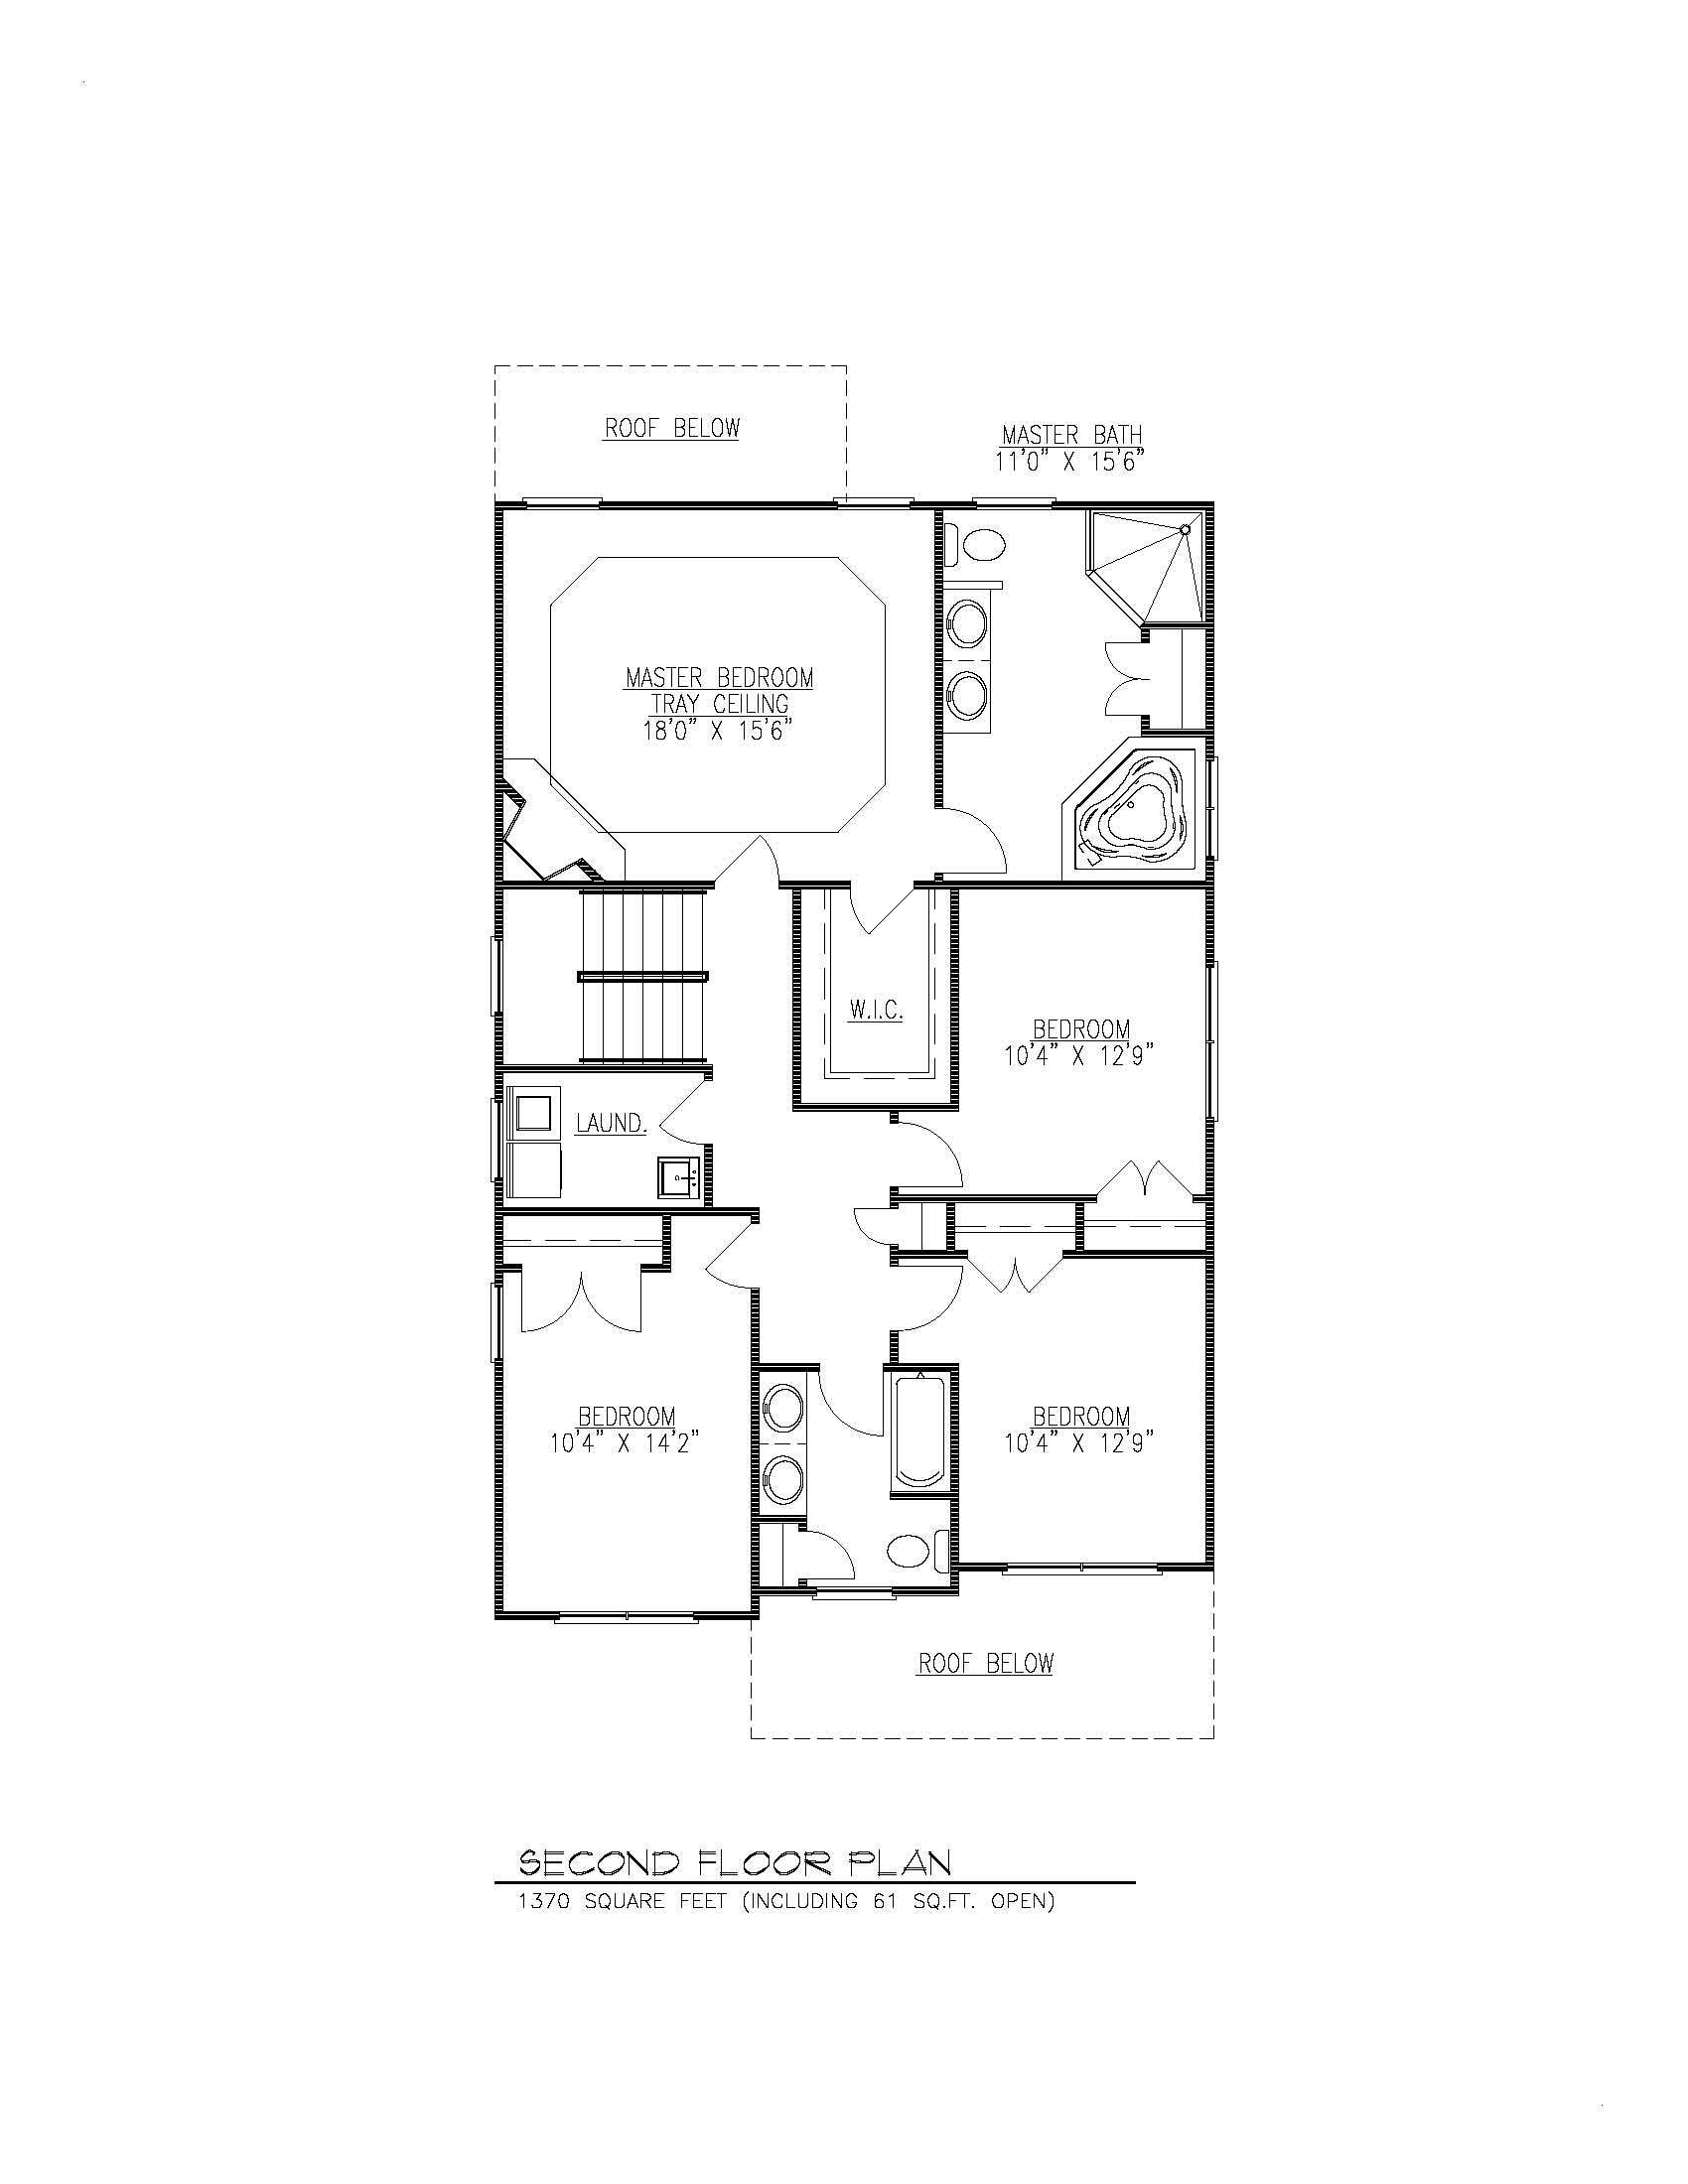 610 Cumberland 2nd Floor Plan B&W